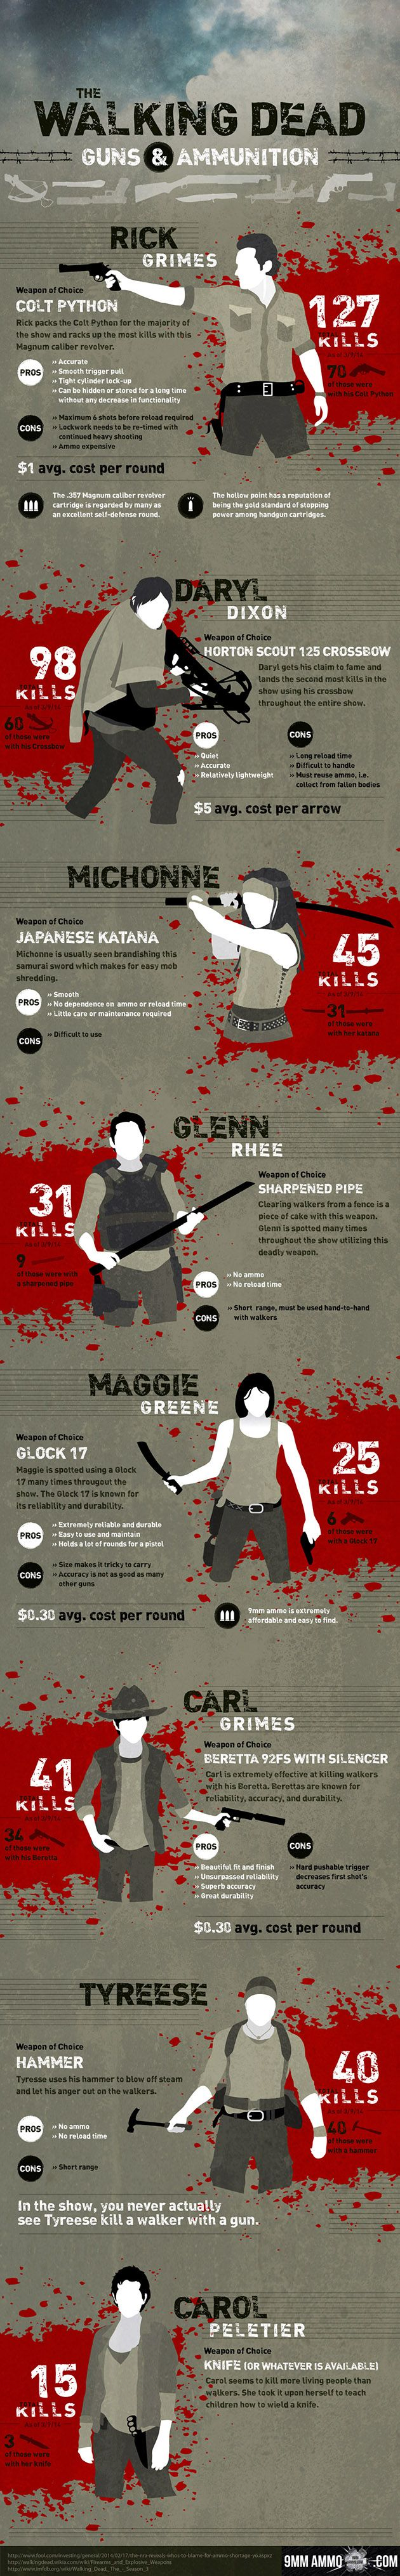 Killer The Walking Dead Infographic is All About the Weapons